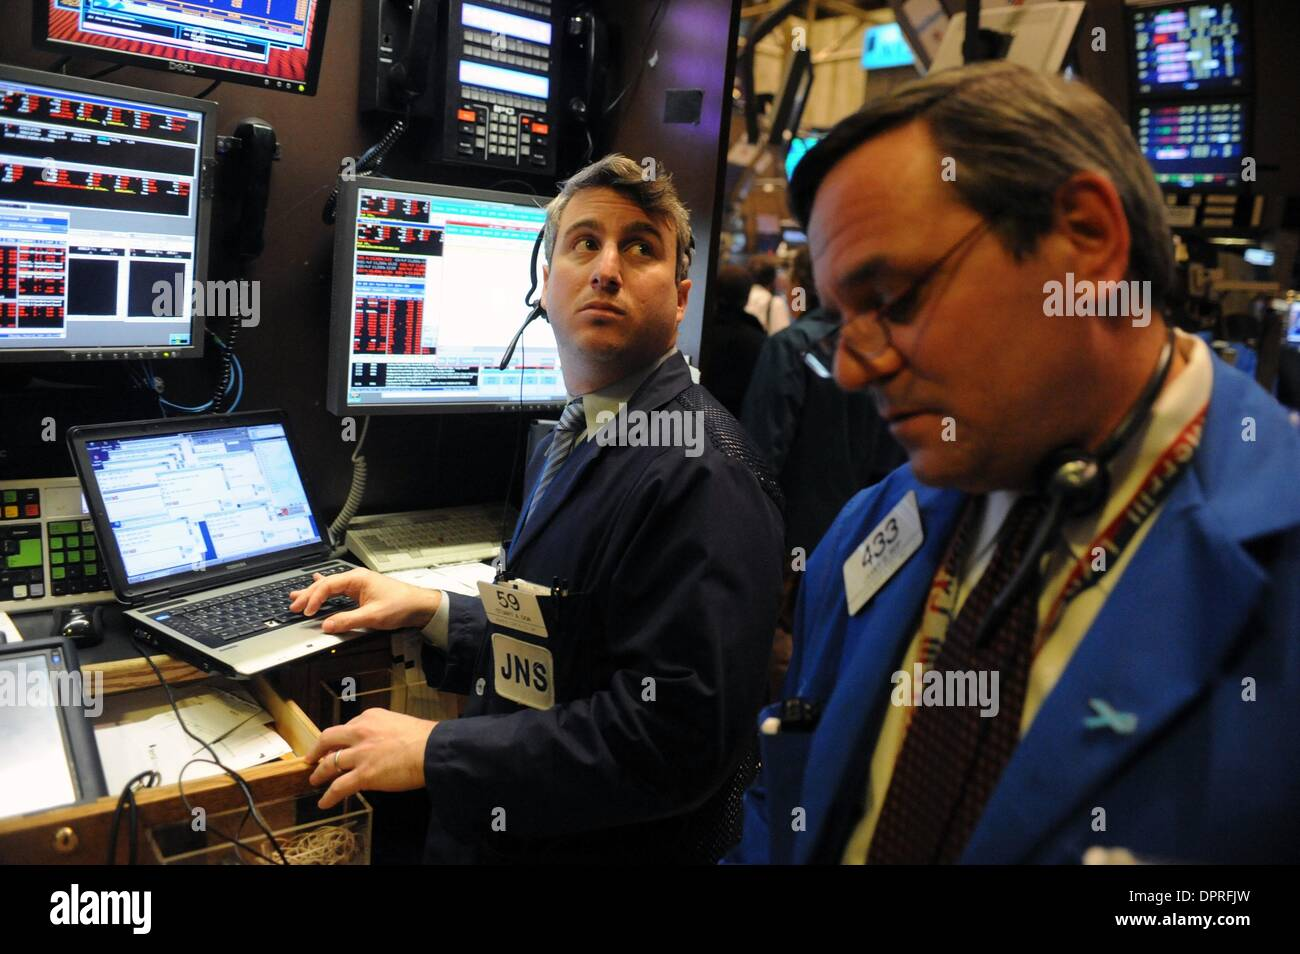 Mar 02, 2009 - Manhattan, New York, USA - Traders on the floor of the New York Stock Exchange as the Dow Jones industrial average closes below 7,000 for the first time since 1997. The Dow closed down close to 300 points to 6,763,29. The credit crisis and recession have cut the average's value since it hit a record high over 14,000 in October 2007.  (Credit Image: © Bryan Smith/ZUM - Stock Image